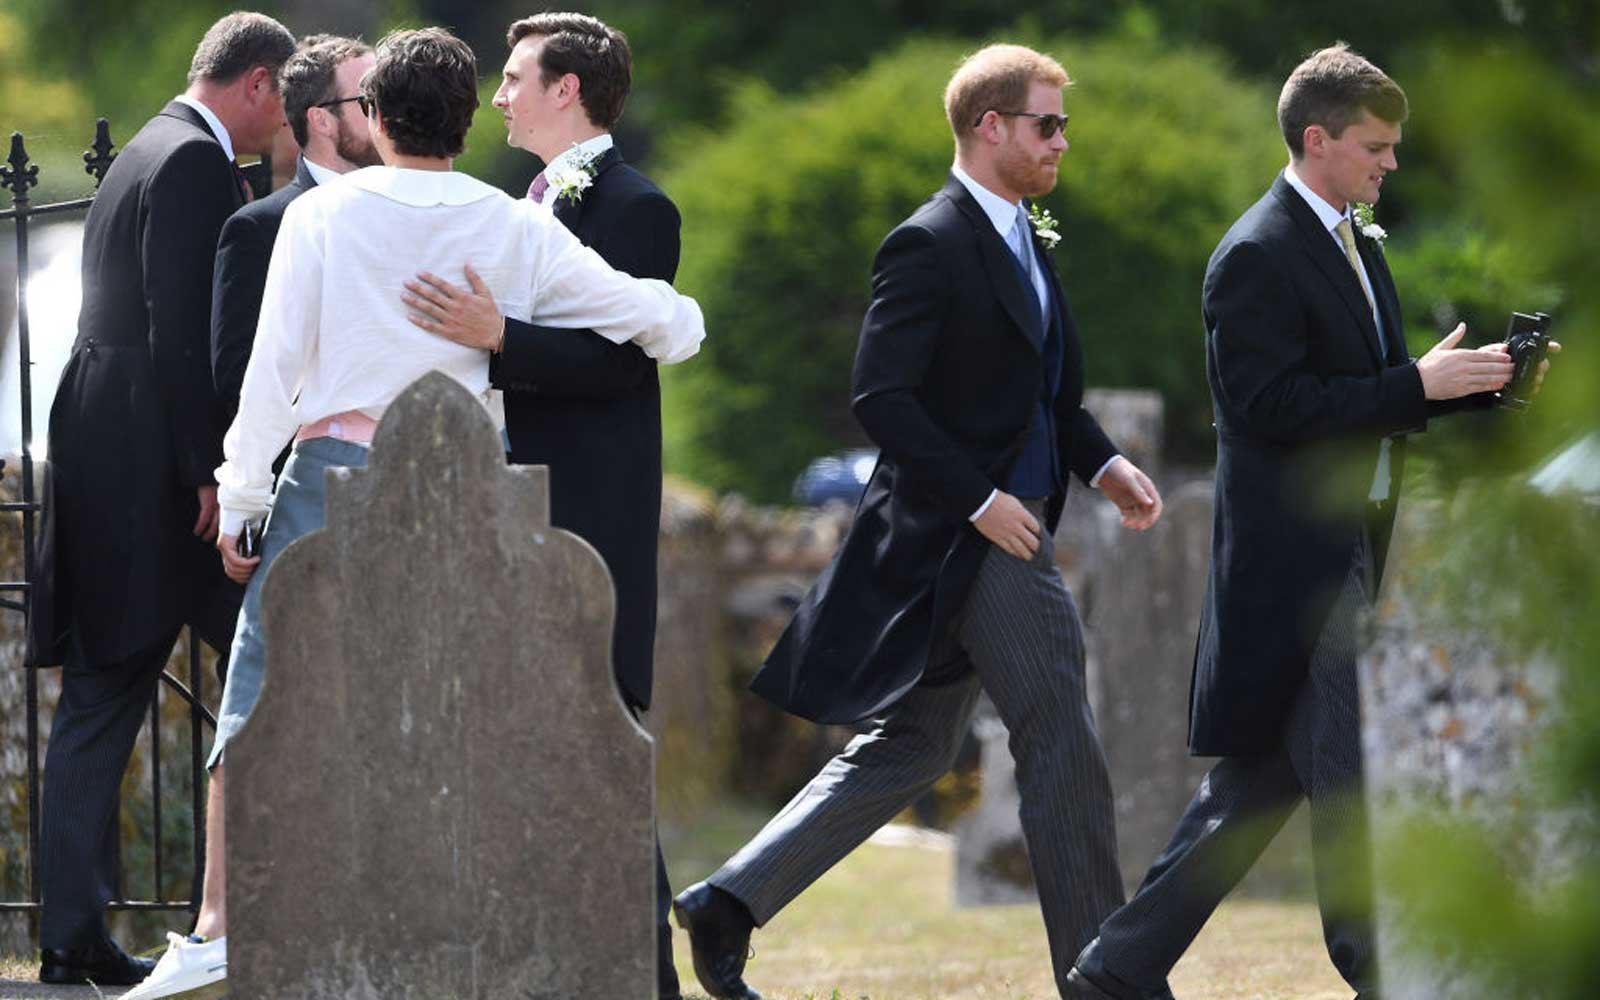 The Duke of Sussex (2nd right) arrives to attend the wedding of Charlie van Straubenzee (4th left) and Daisy Jenks at St Mary the Virgin Church in Frensham, Surrey.